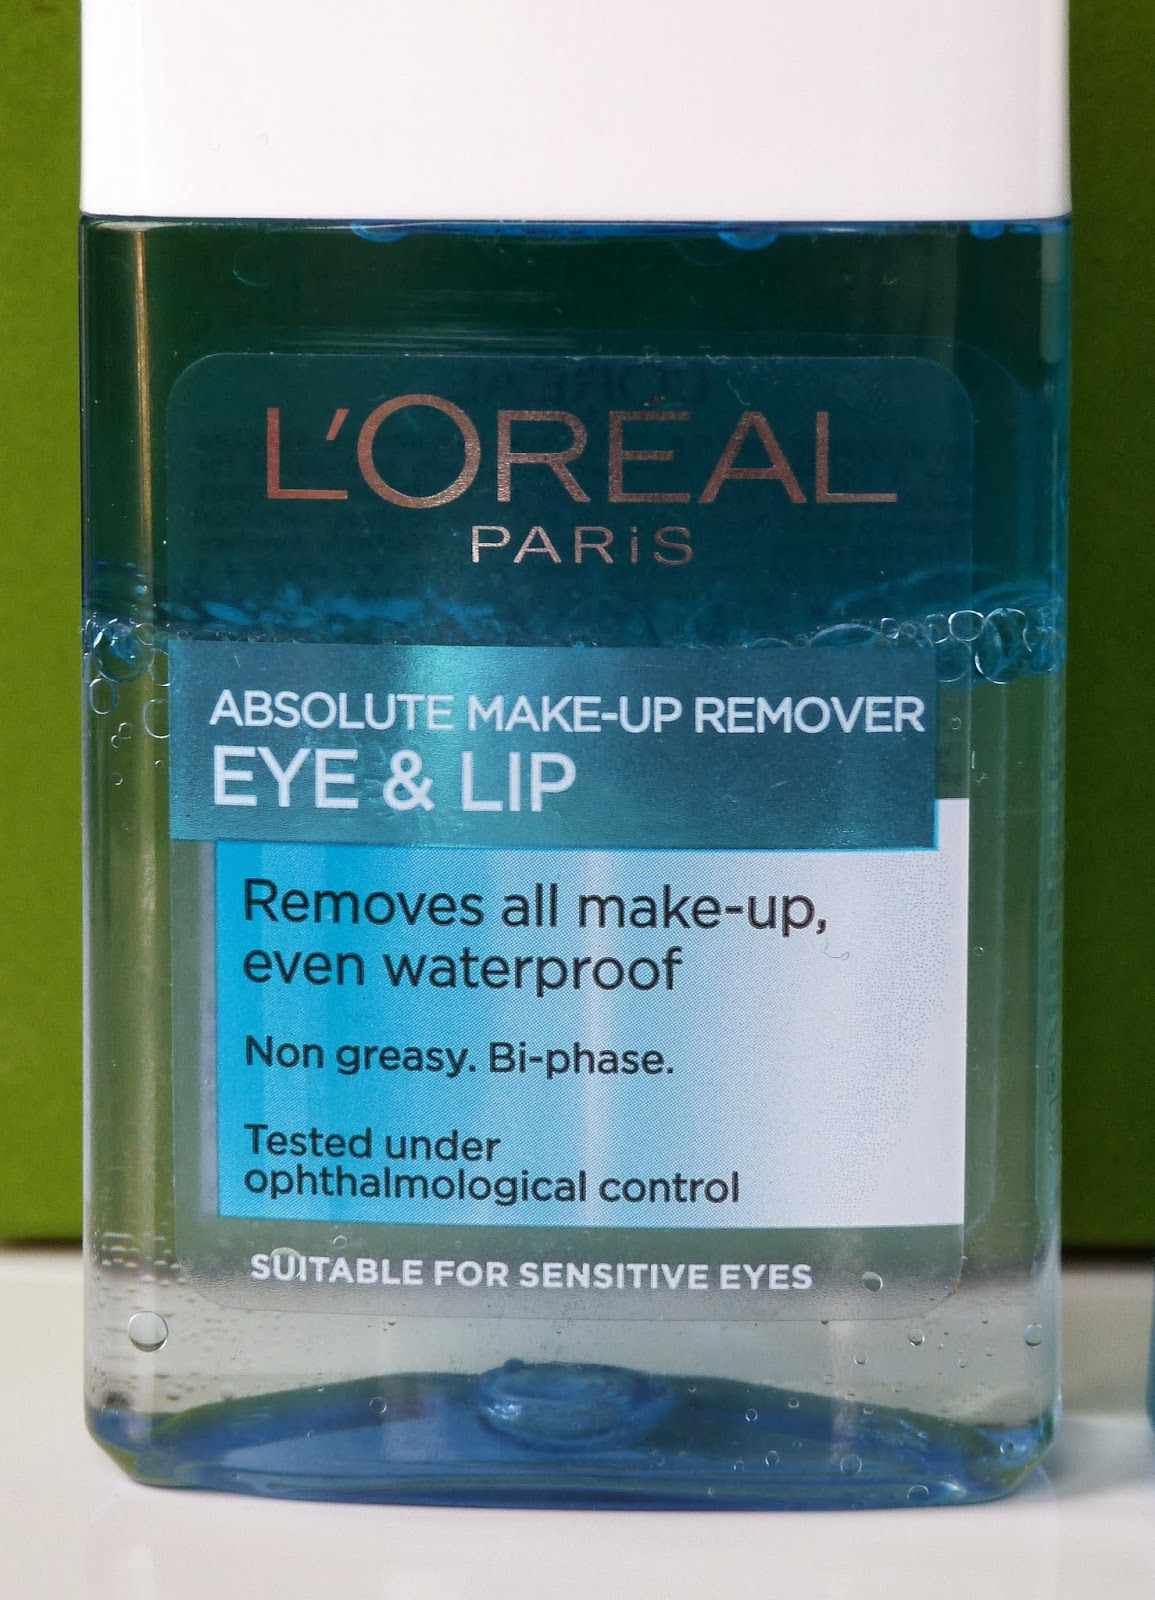 L'Oreal Paris Absolute Make-Up Remover Eye & Lip